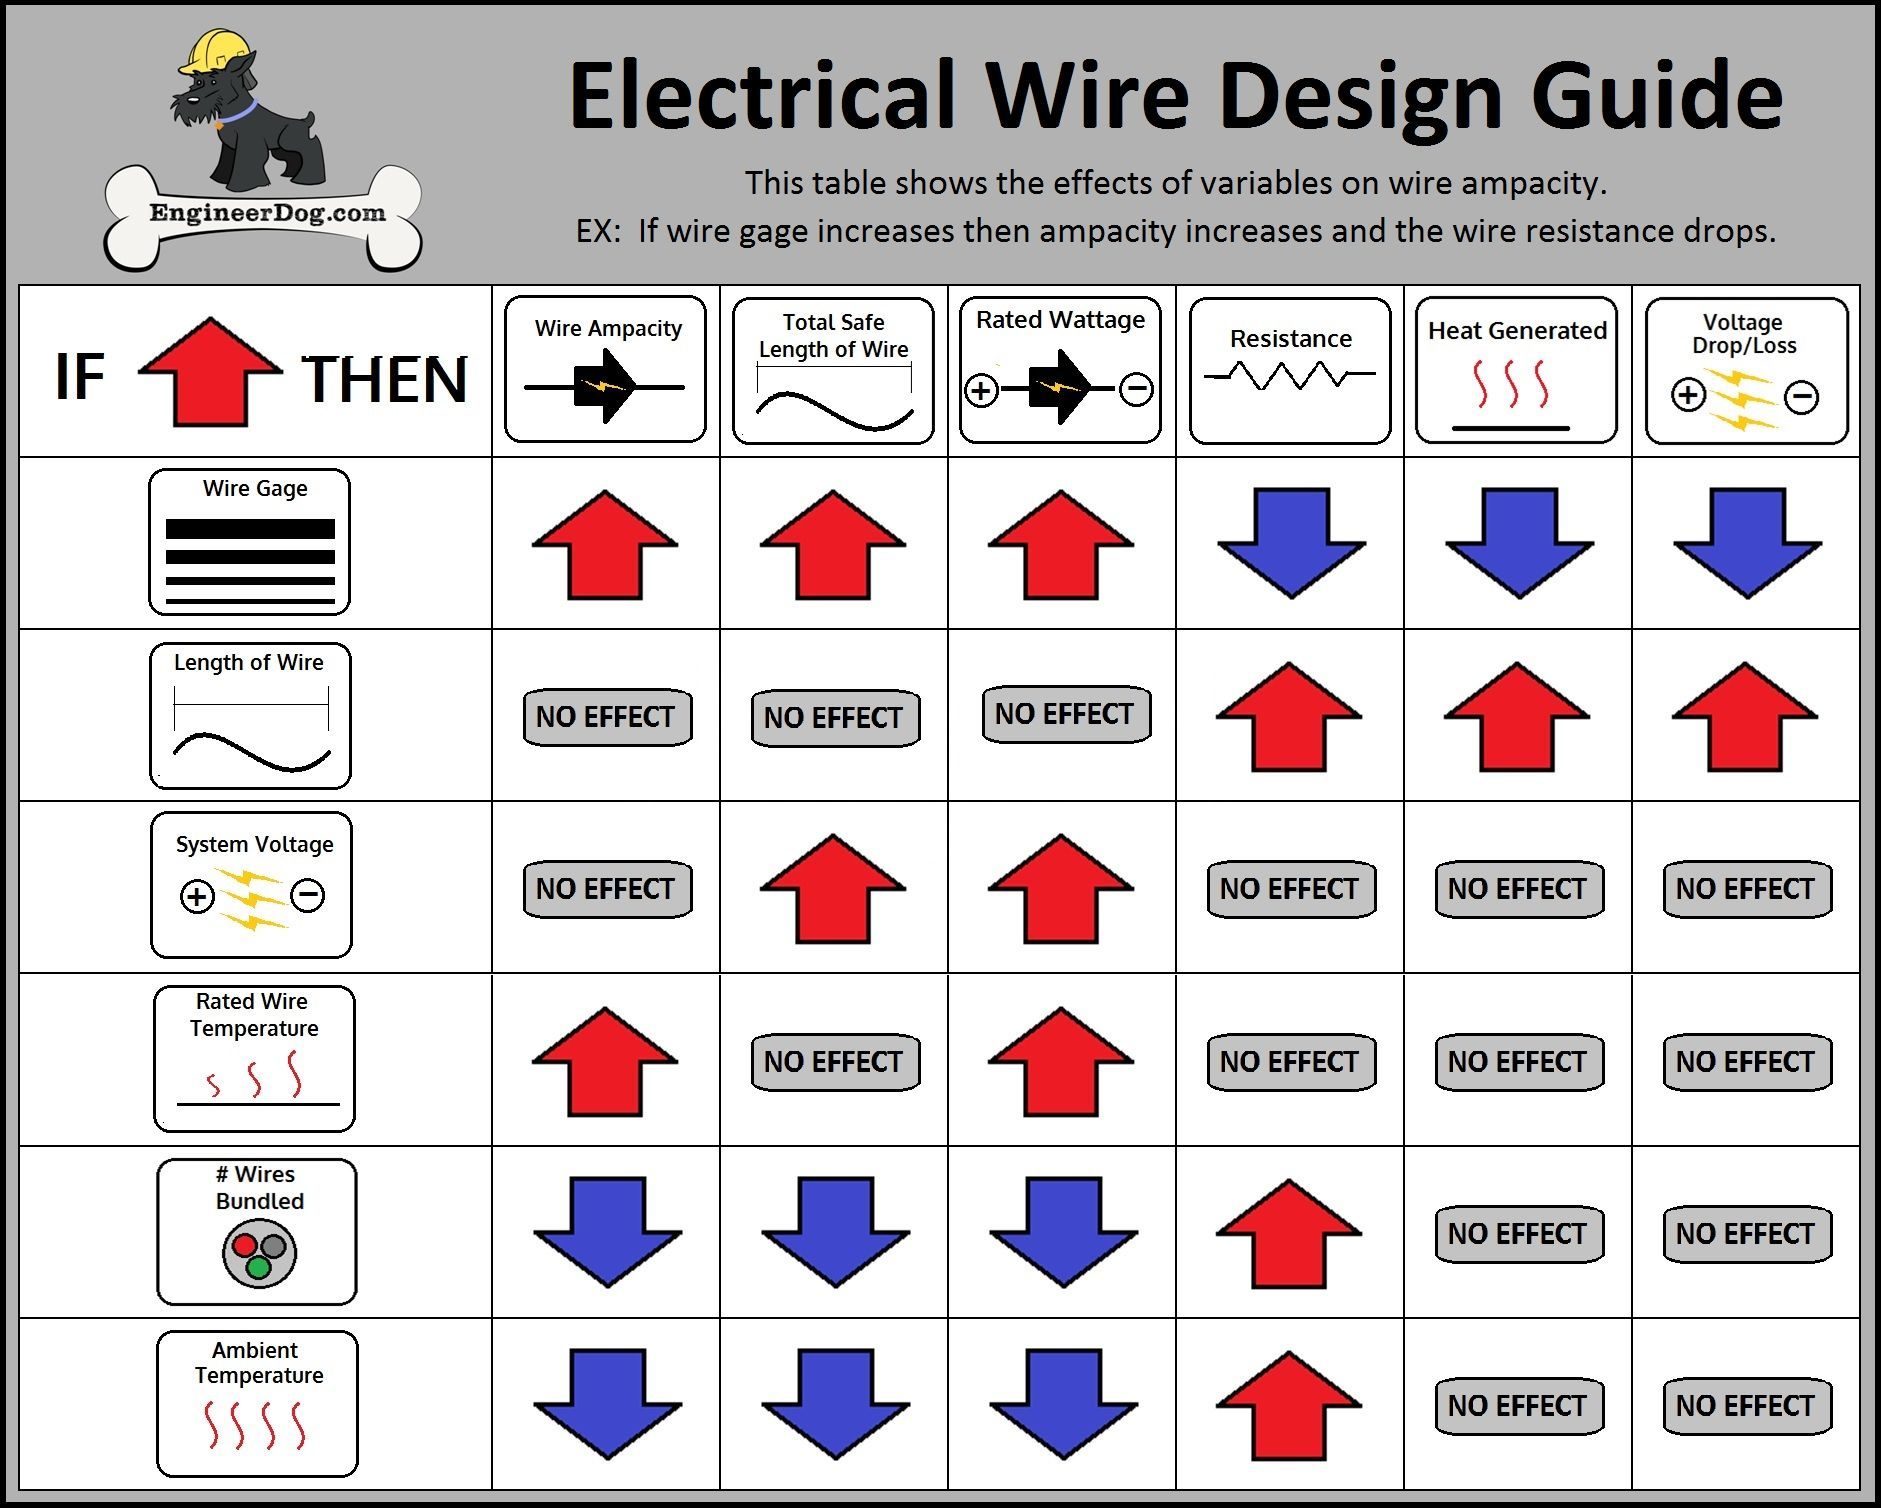 Electrical wire design guide see website for free wire gauge electrical wire design guide see website for free wire gauge calculator guide keyboard keysfo Gallery